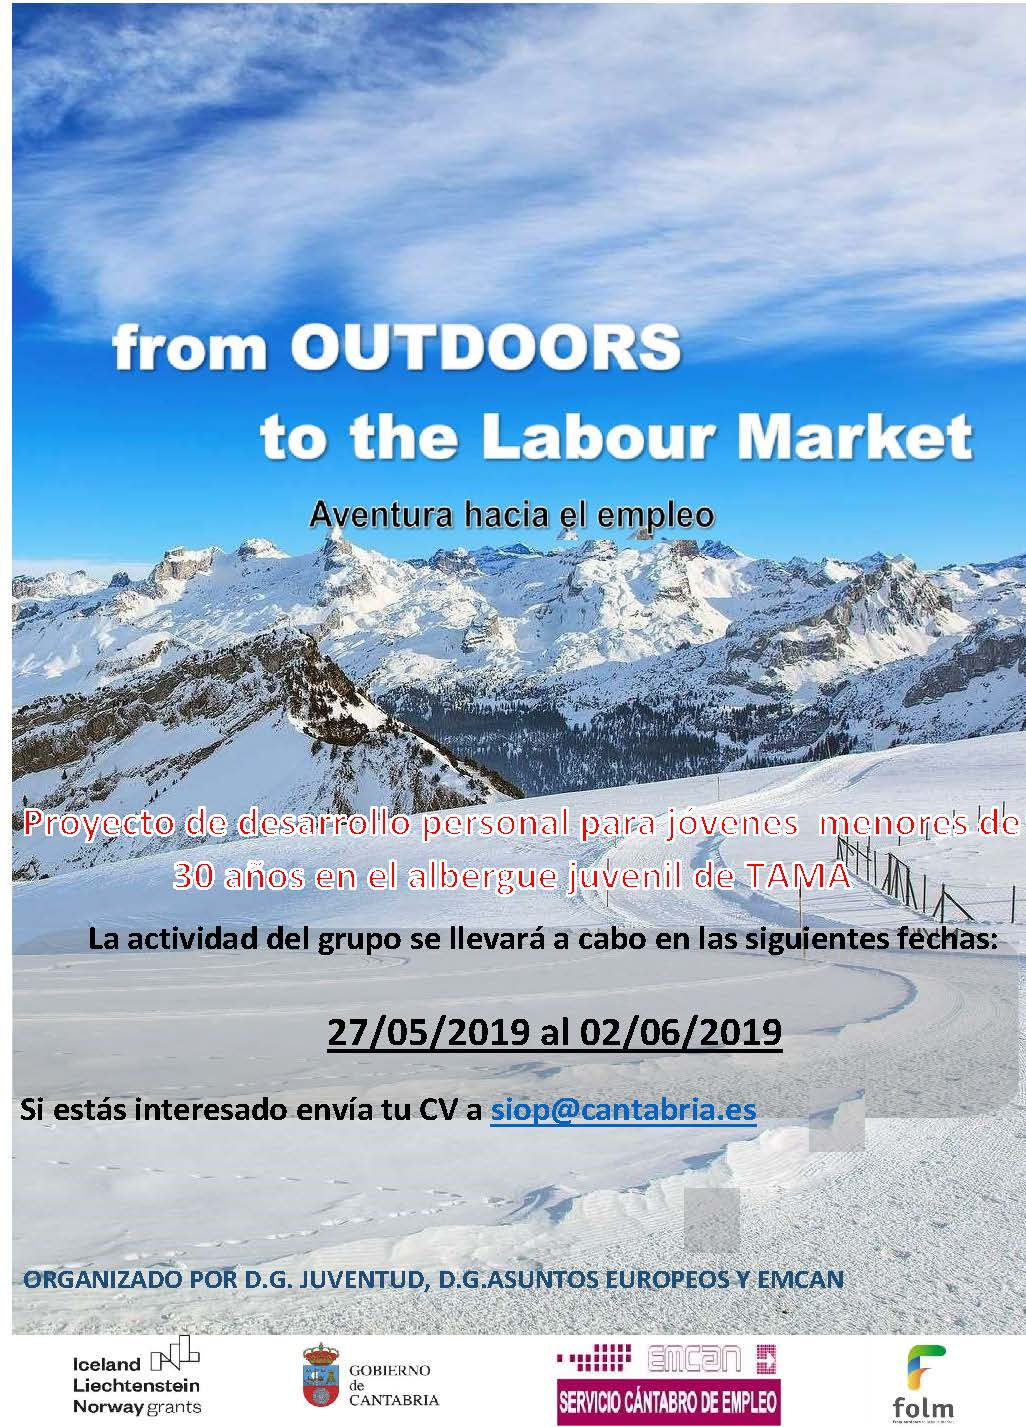 from OUTDOORS to the Labour Market – Aventura hacia el empleo